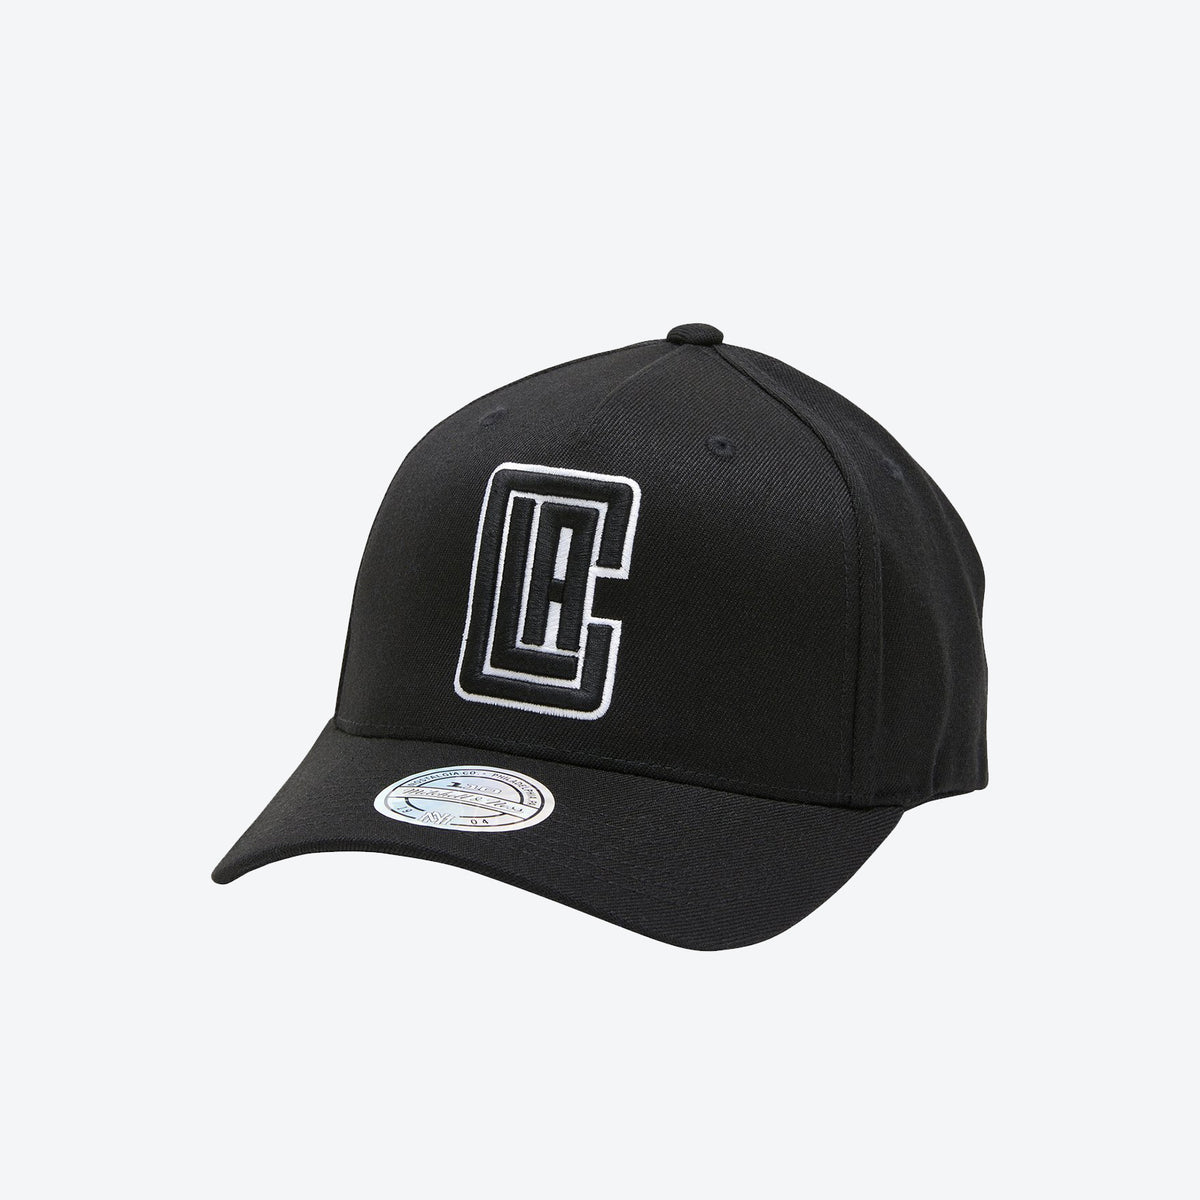 Los Angeles Clippers Black And White Logo 110 Snapback